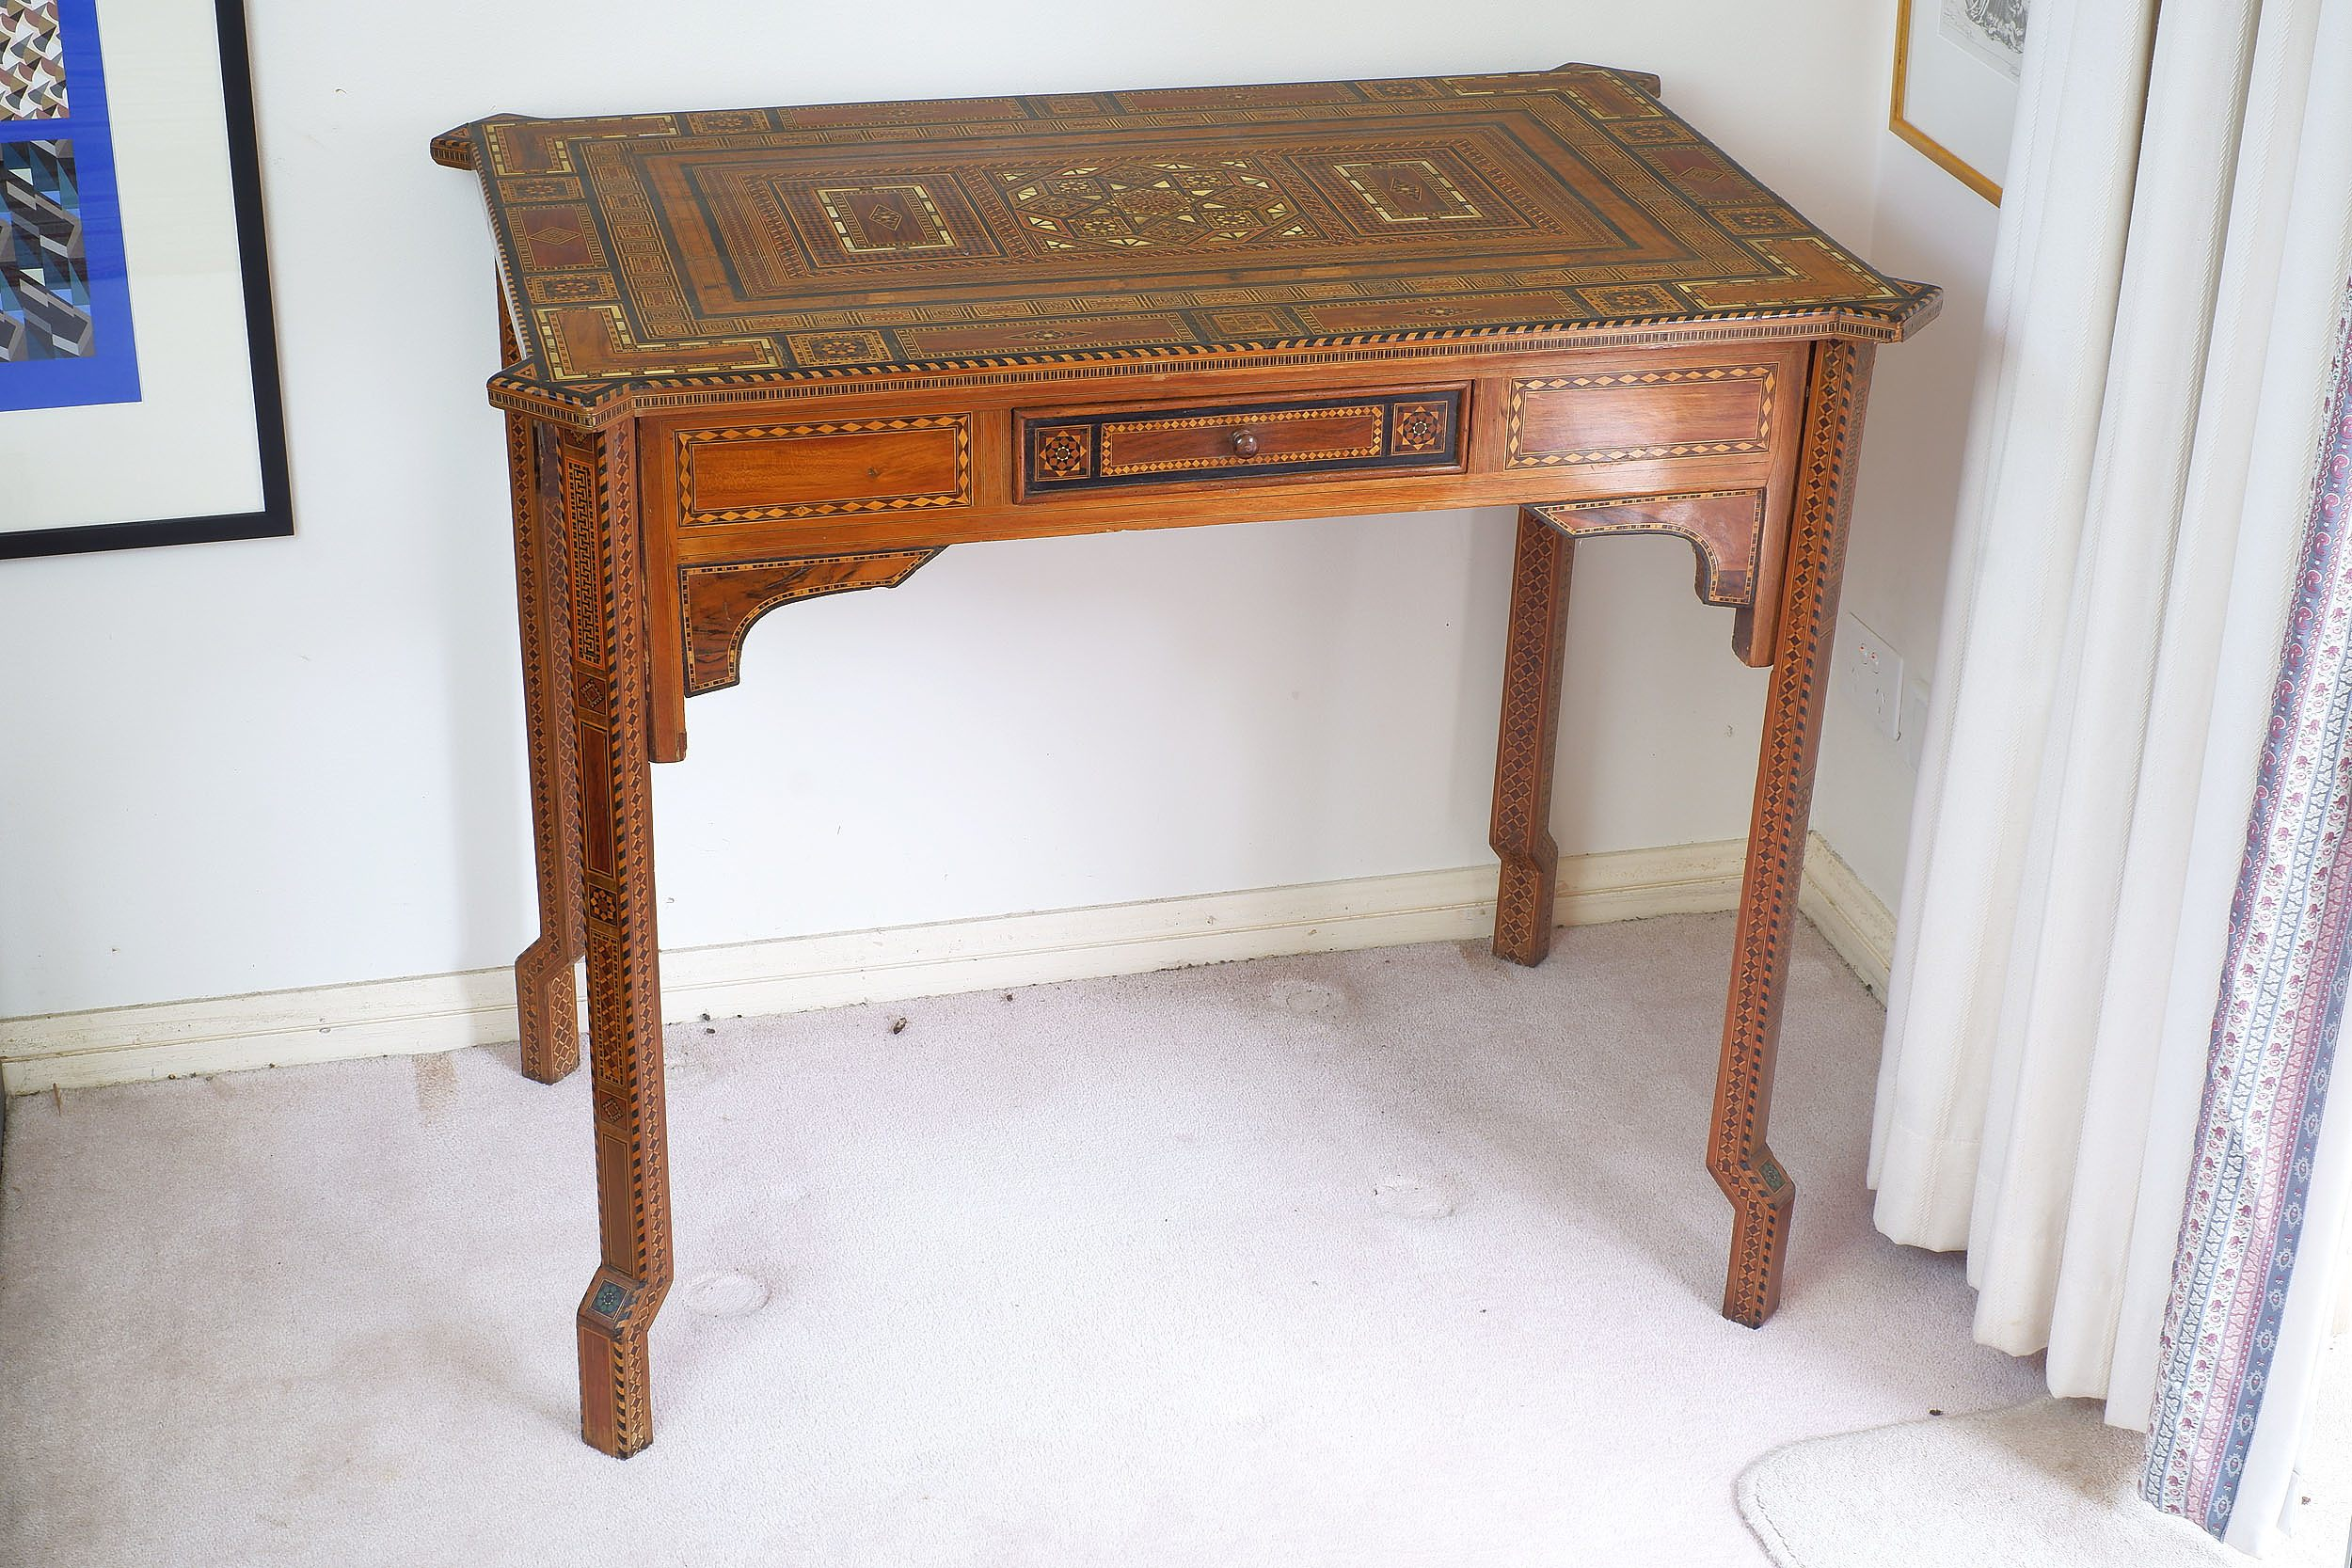 'Syrian Profusely Inlaid Side Table'